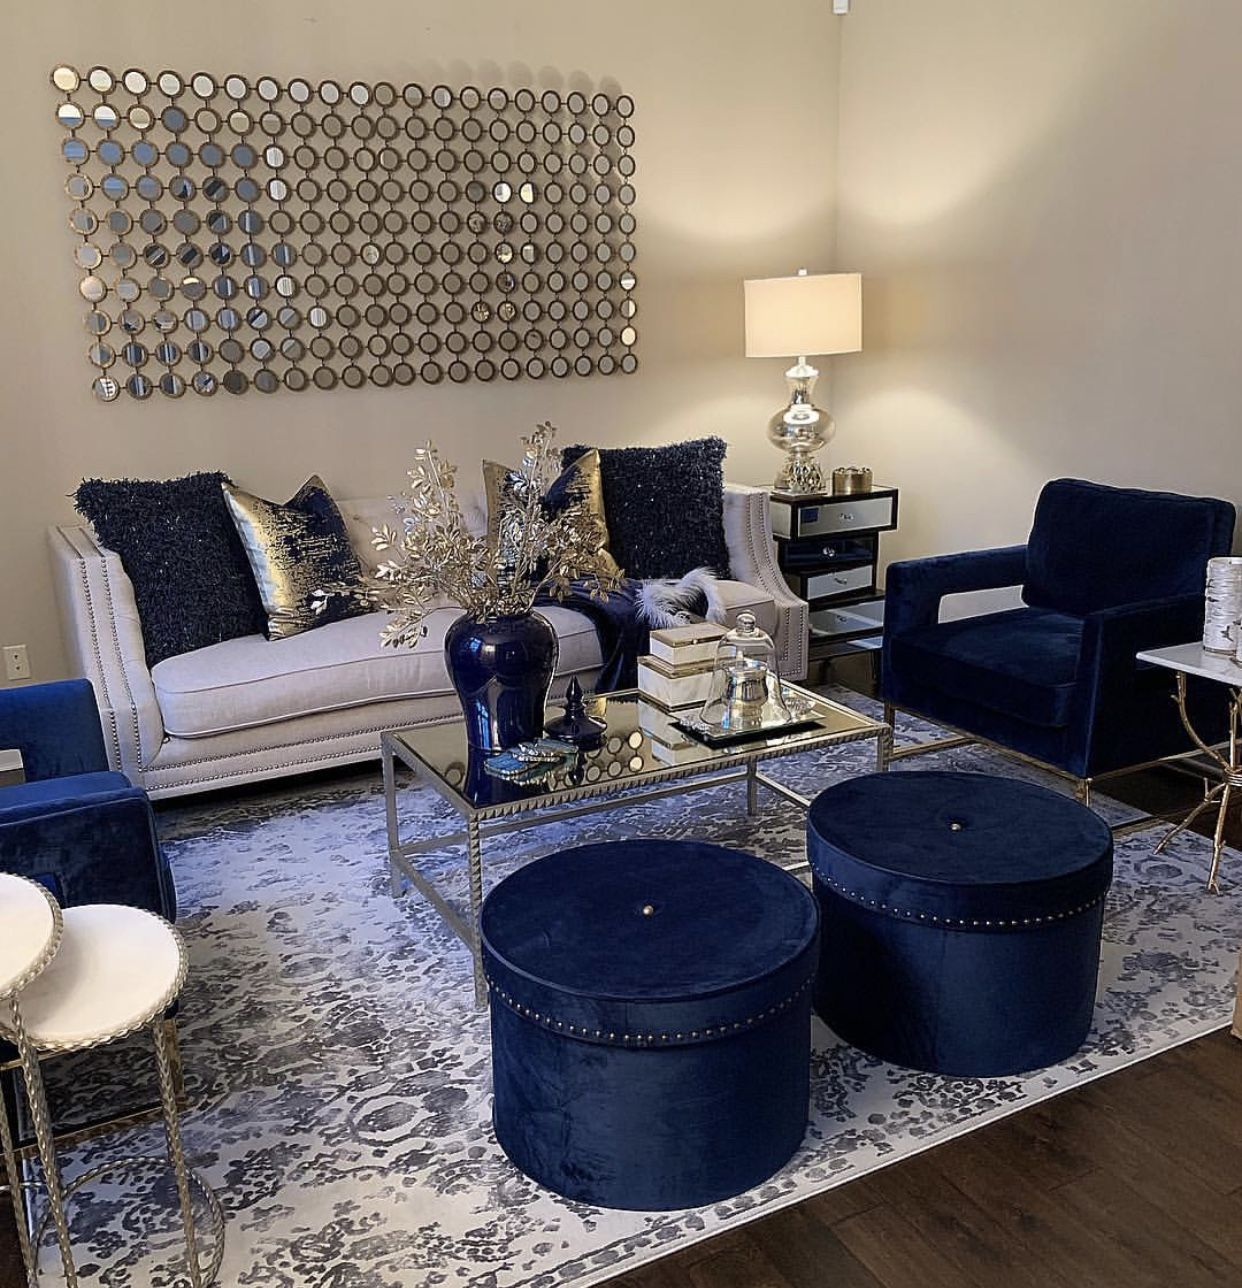 White Gold And Navy Blue Living Room Blue Sofas Living Room Blue Furniture Living Room Blue Living Room Decor #navy #blue #and #gold #living #room #decor